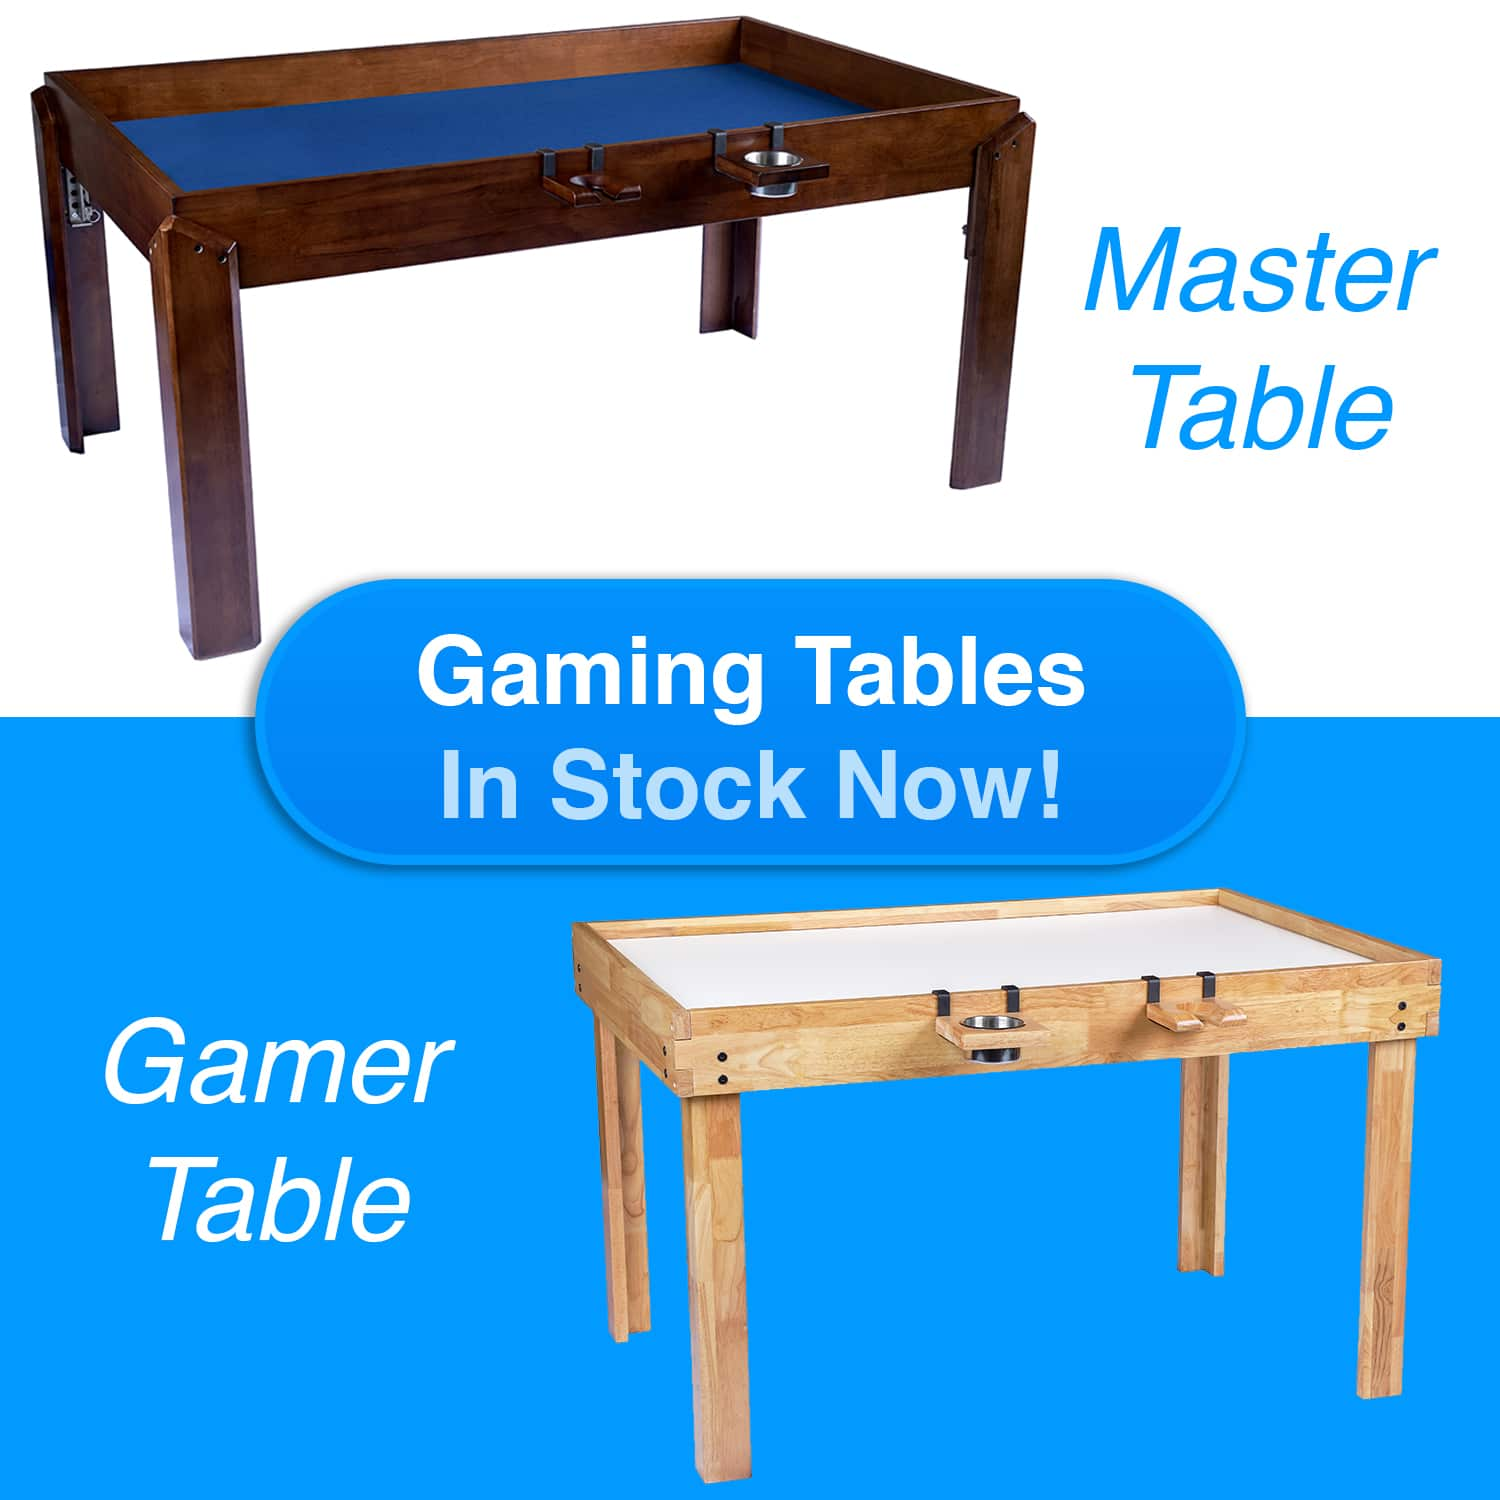 gaming table, game table, gamer table, ultimate gaming table, board game table, board gaming table